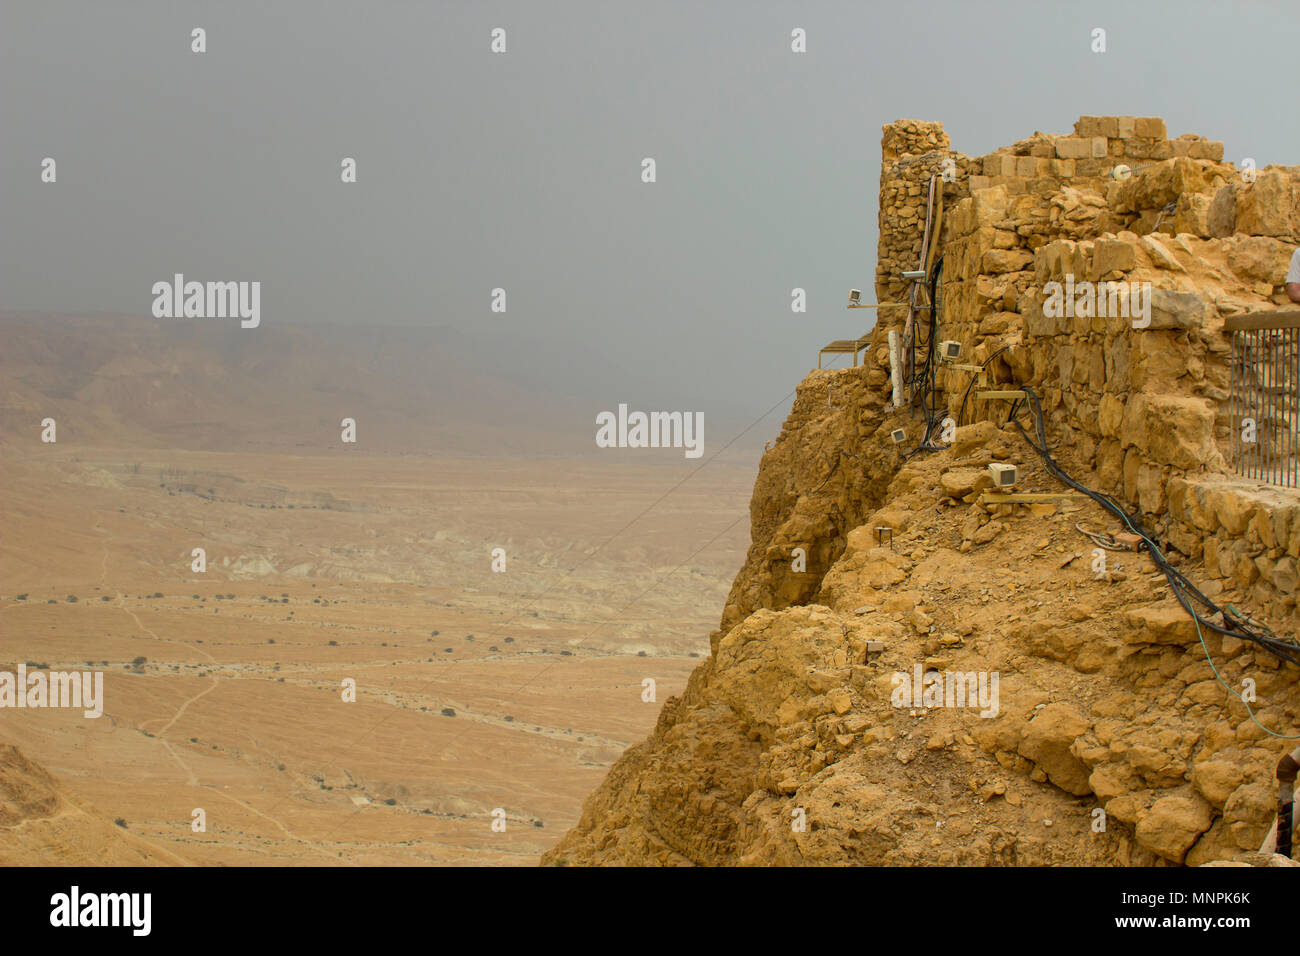 Some of the reconstructed ruins of the ancient Jewish clifftop fortress of Masada in Southern Israel.  This was the scene of an historic mass suicide. Stock Photo